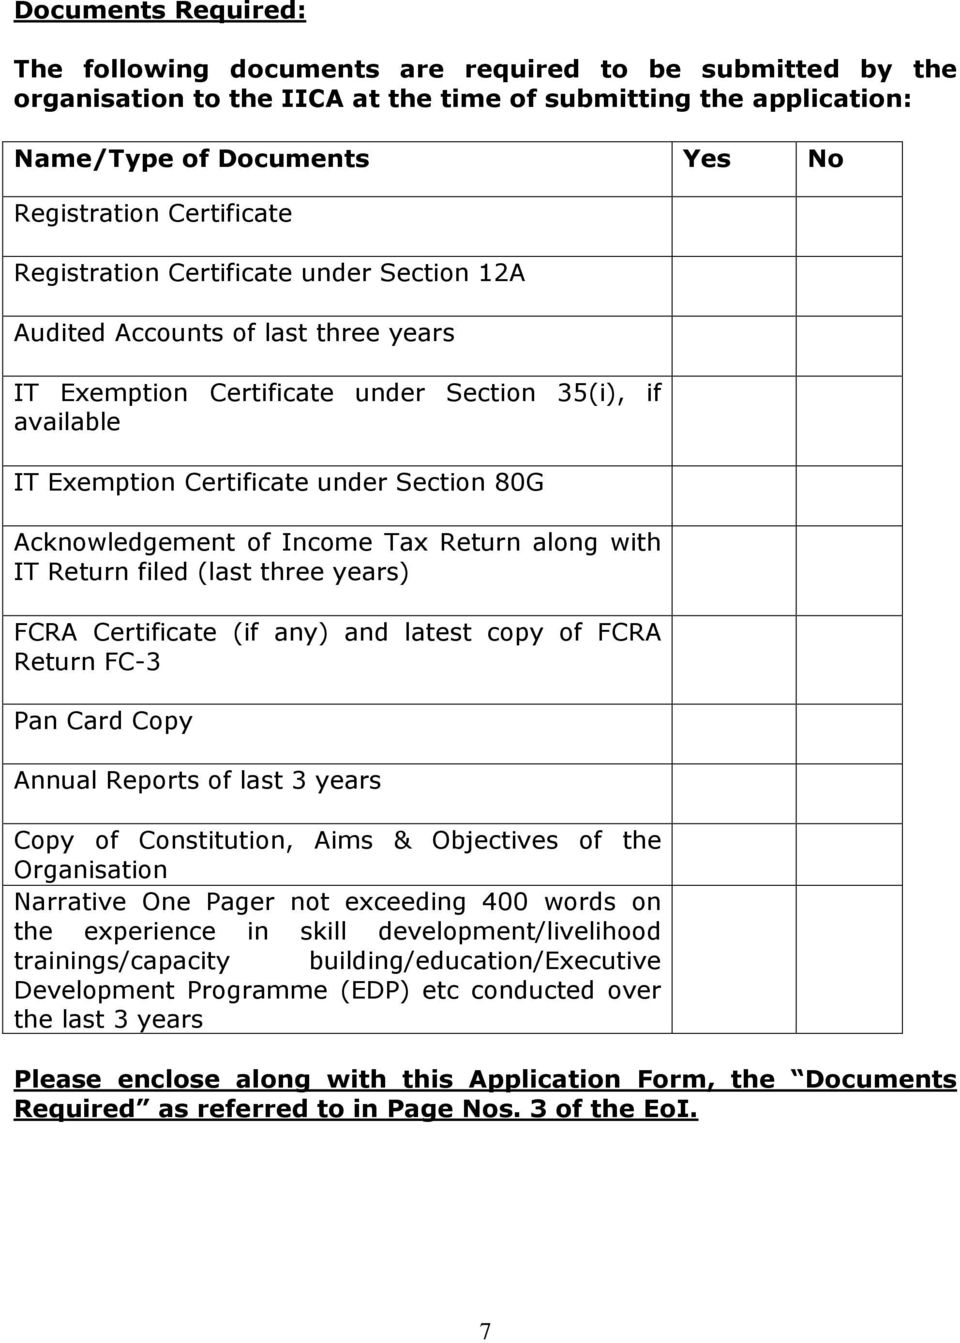 Acknowledgement of Income Tax Return along with IT Return filed (last three years) FCRA Certificate (if any) and latest copy of FCRA Return FC-3 Pan Card Copy Annual Reports of last 3 years Copy of